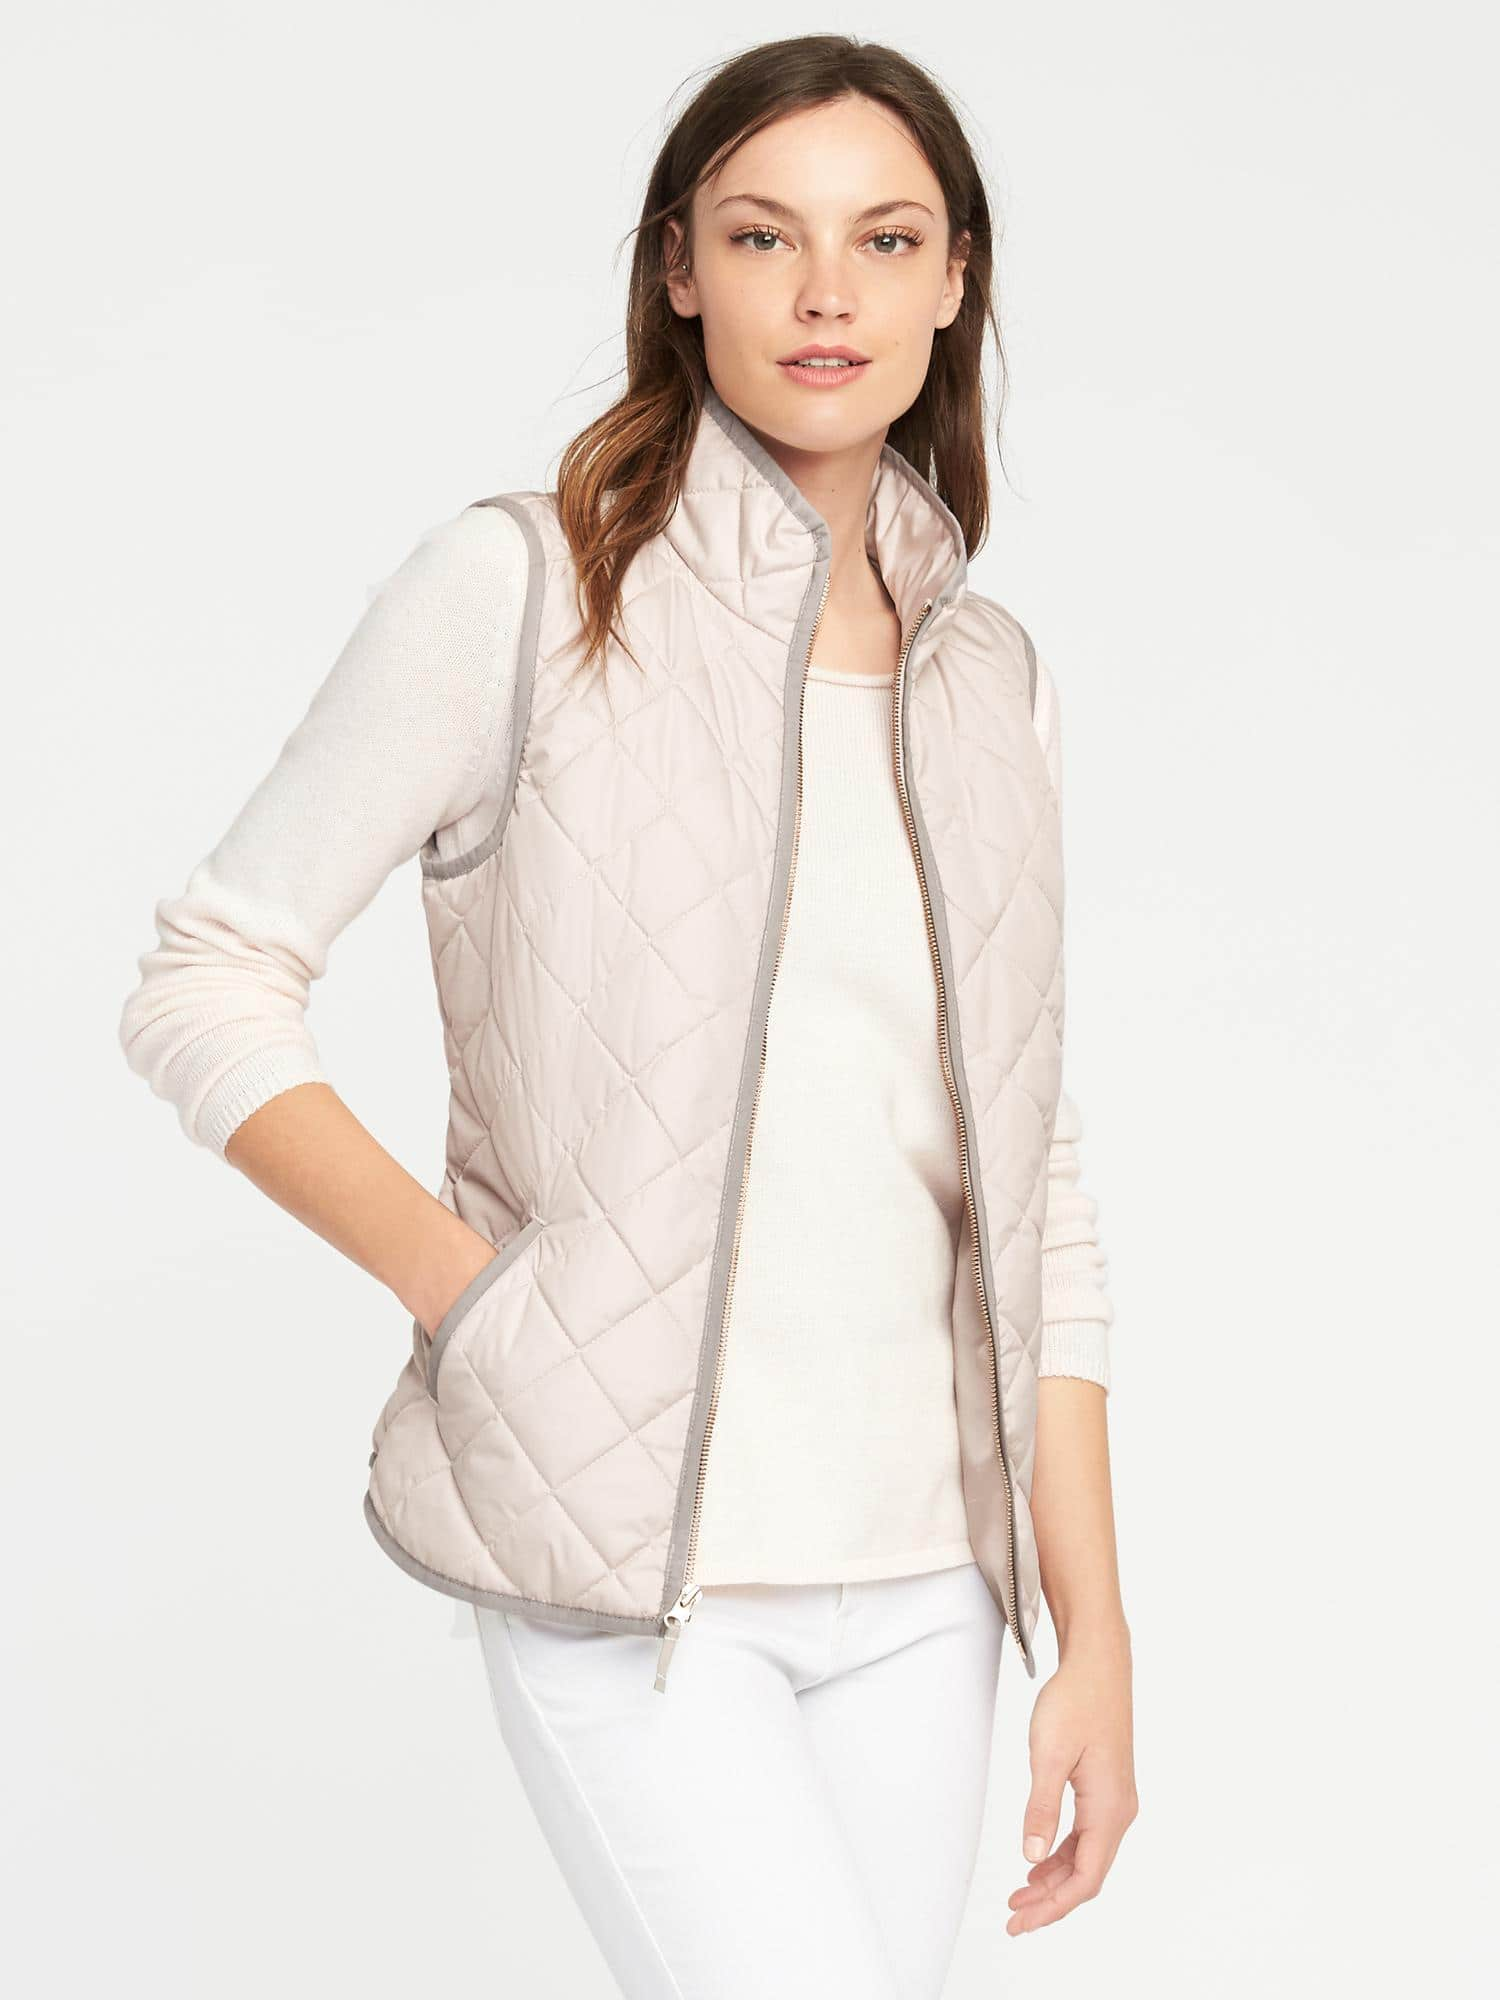 Old Navy Women's Quilted Plaid Vest $9, Quilted Solid Vest $12 + Free S/H $50+ (pre discount)